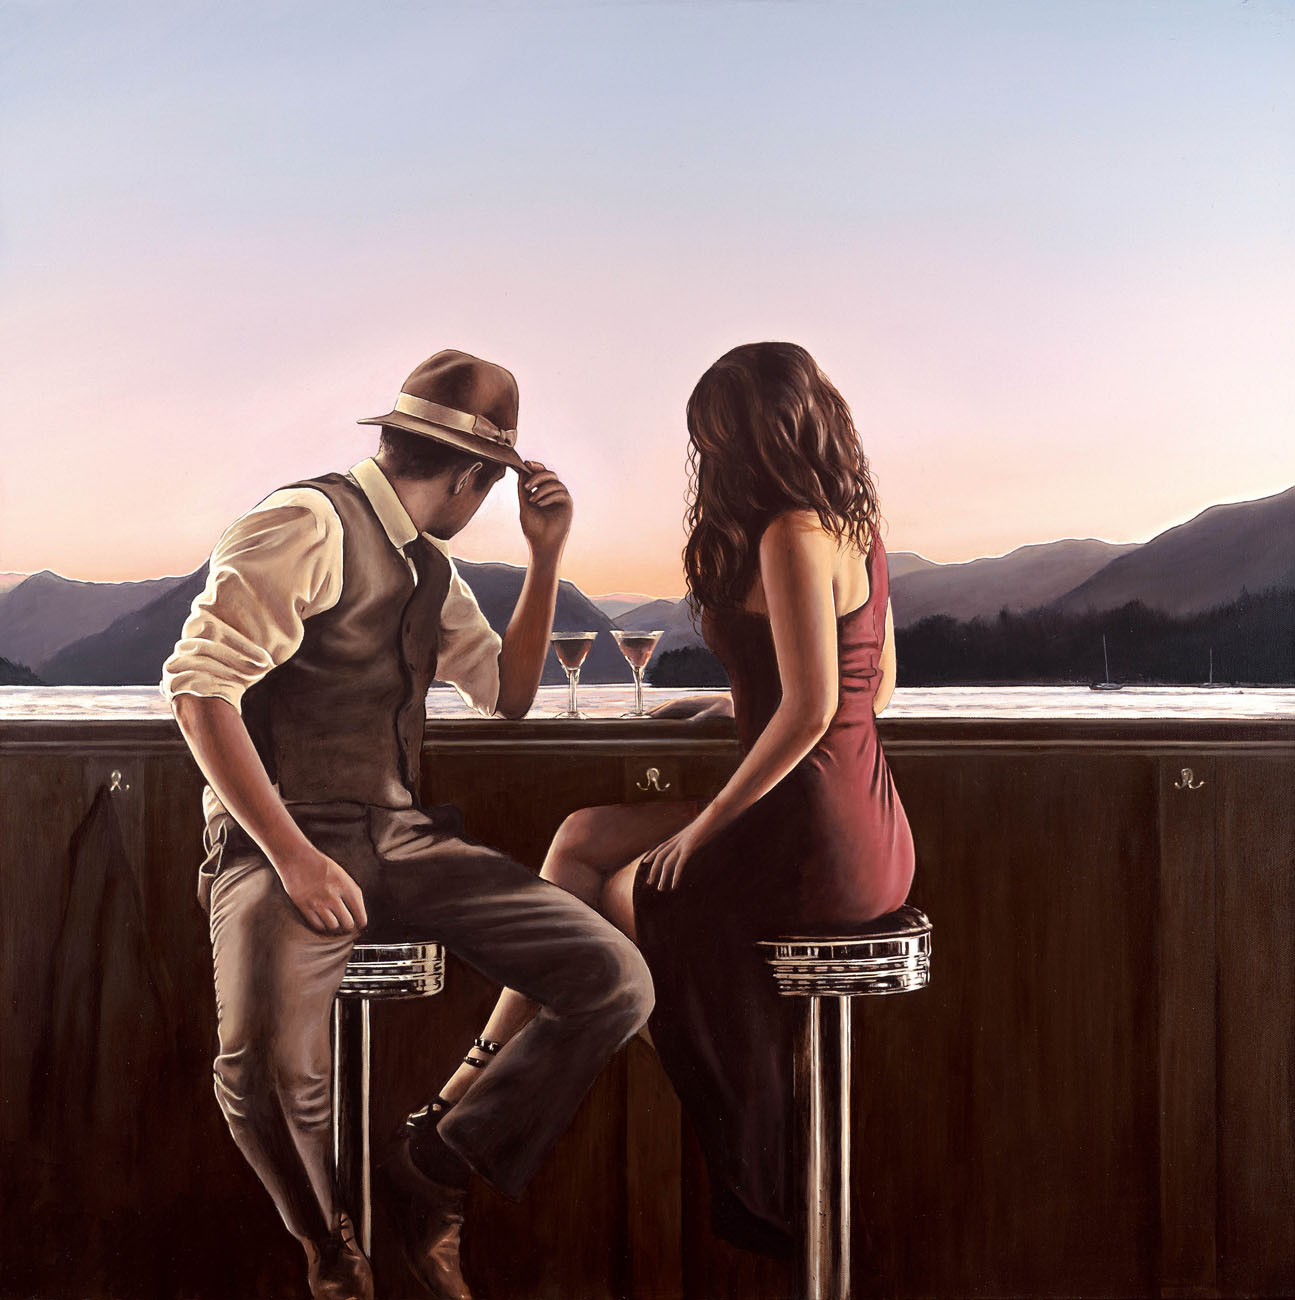 Stolen Moments by Richard Blunt